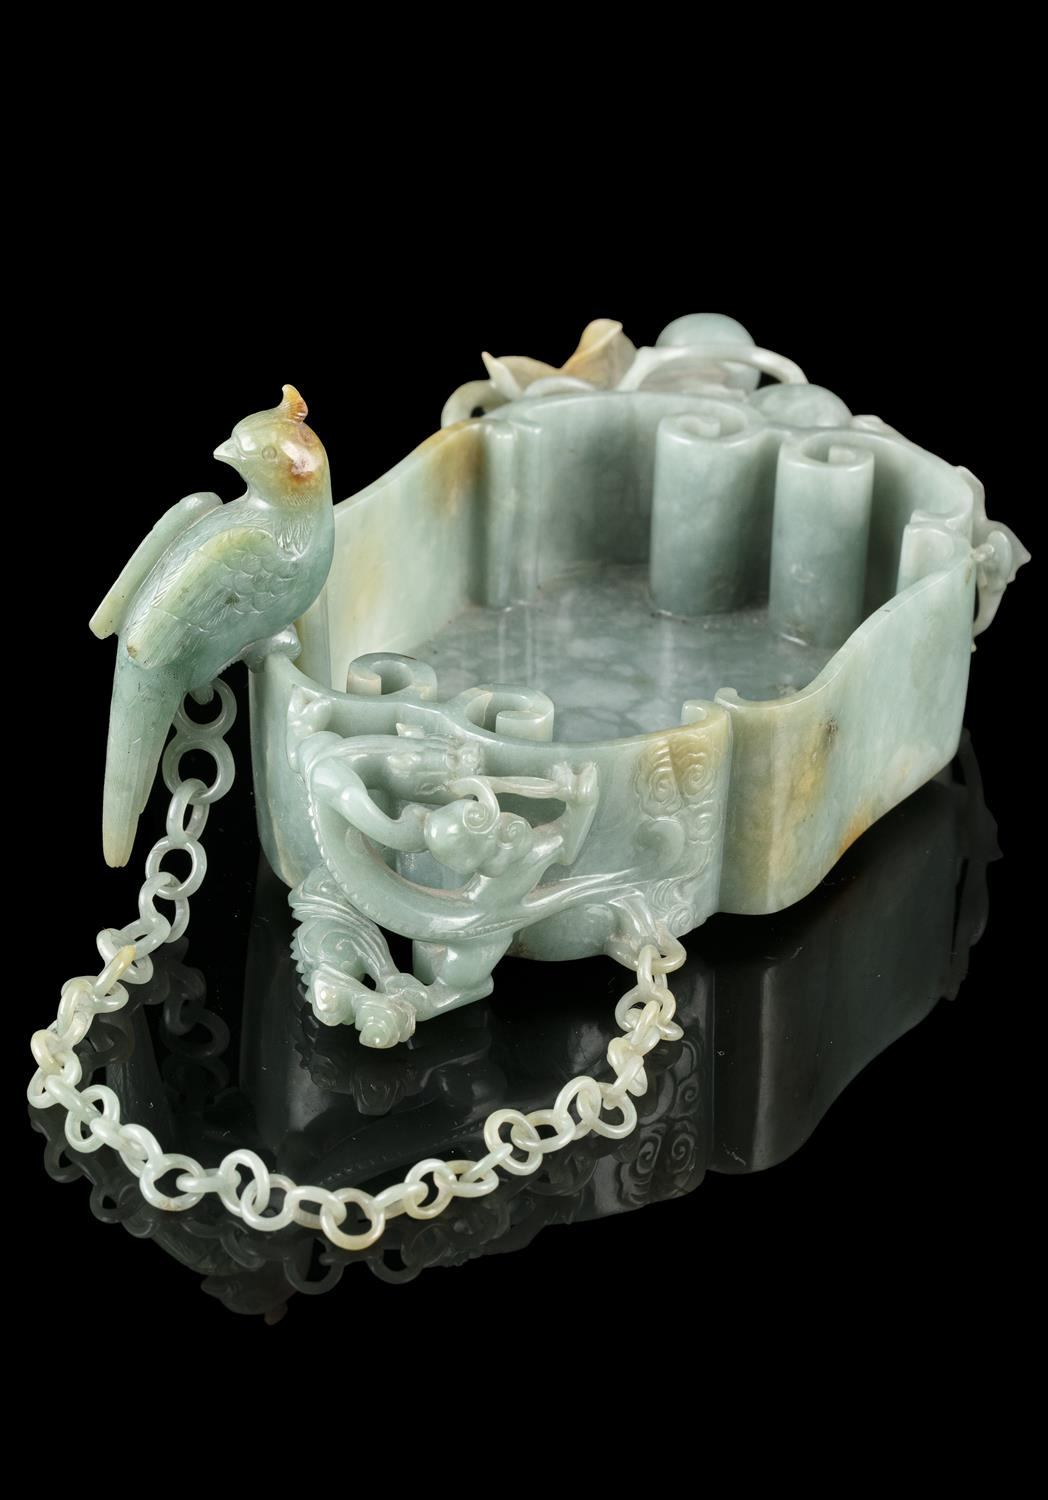 A LINGZHI-SHAPED JADEITE JADE BRUSHWASHER WITH A PARROT China, Qing Dynasty, 19th century - Image 26 of 35